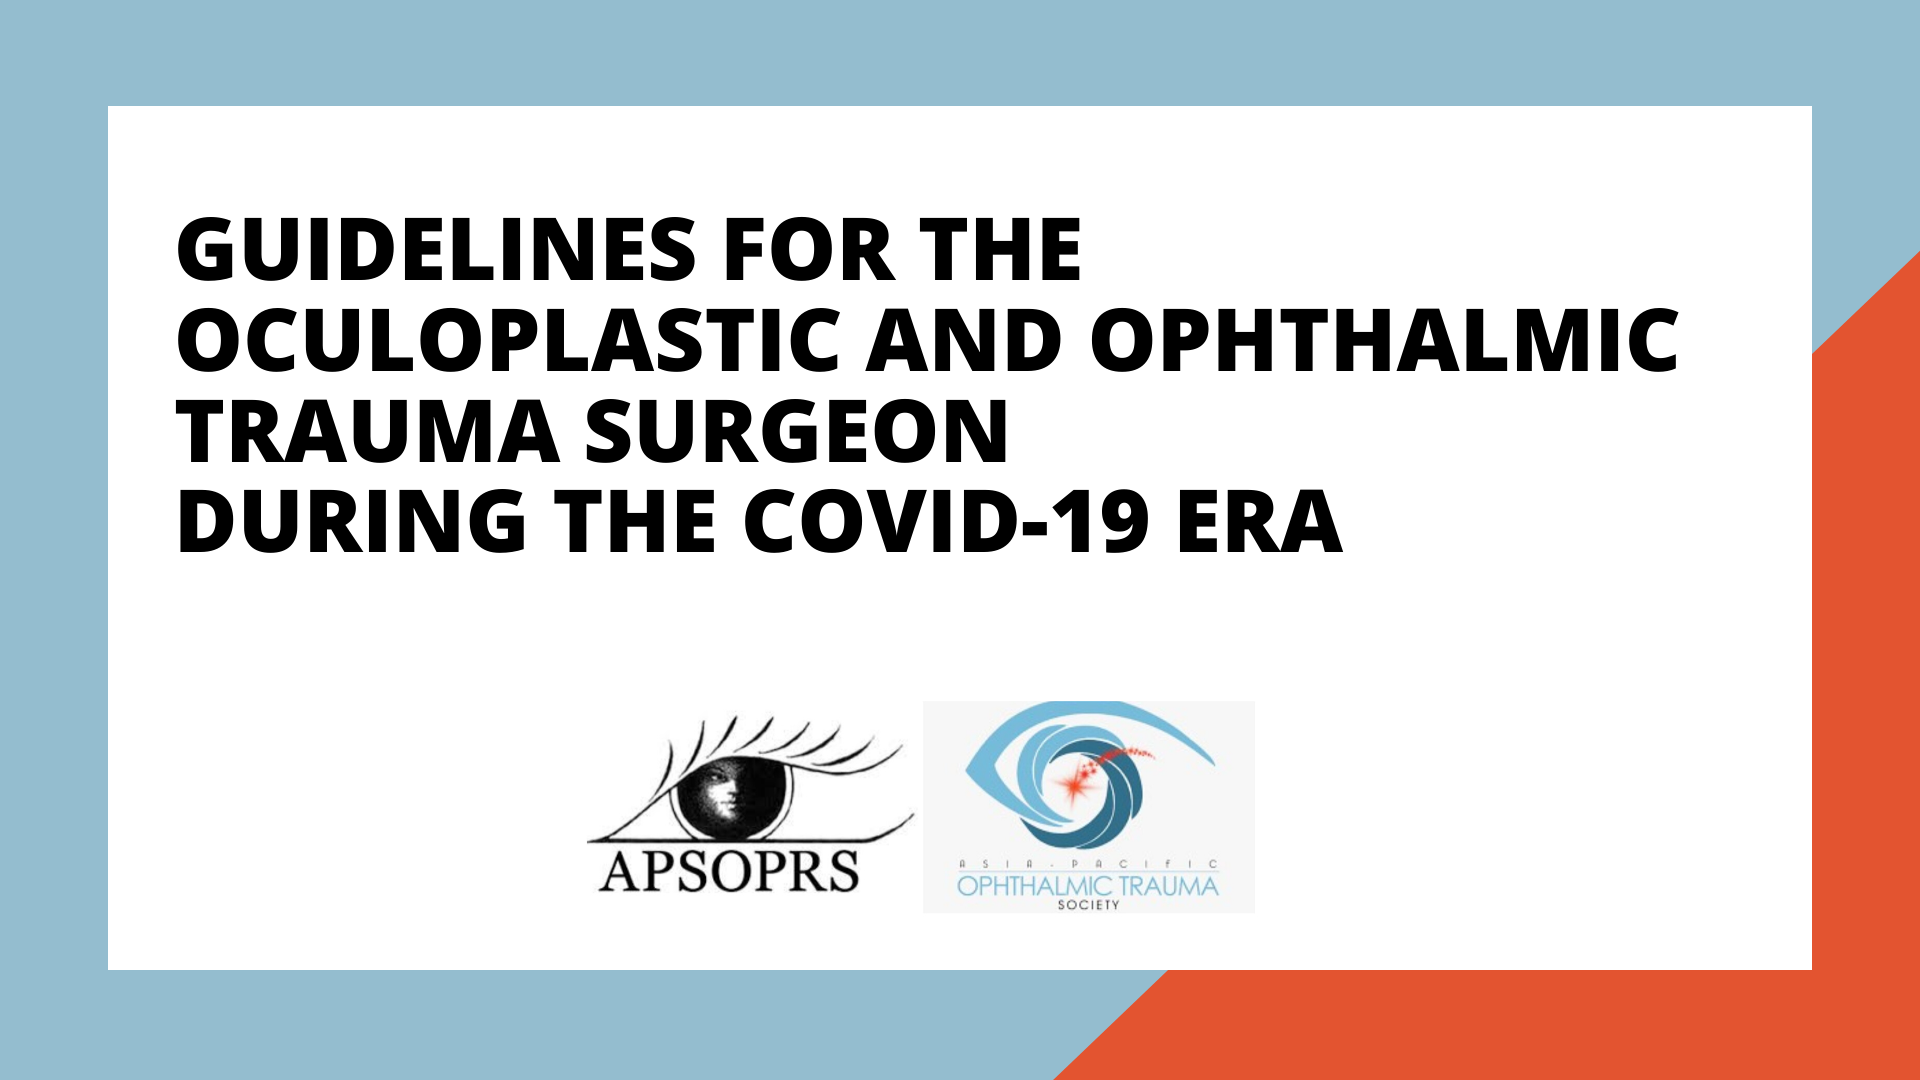 Guidelines for the Oculoplastic and Ophthalmic Trauma Surgeon during the COVID-19 era